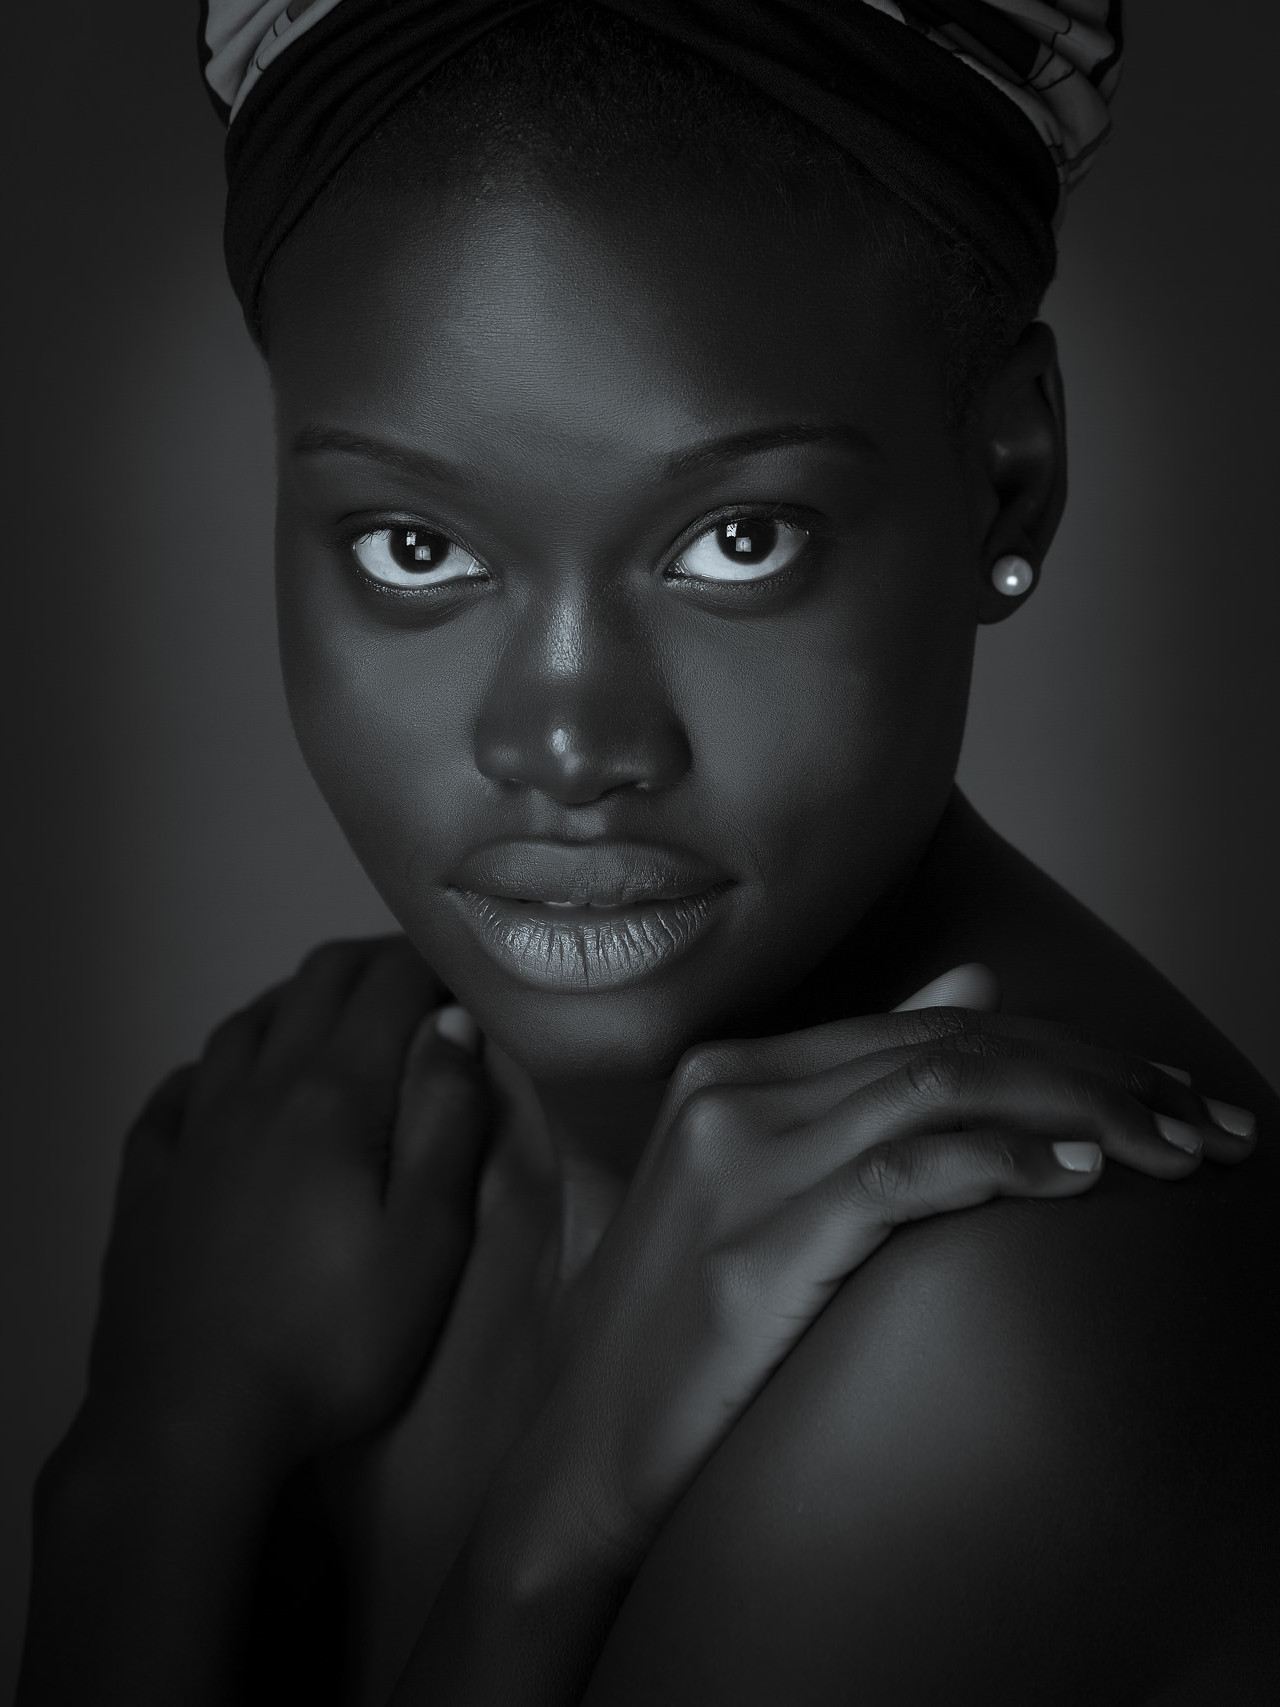 headshot of an African model